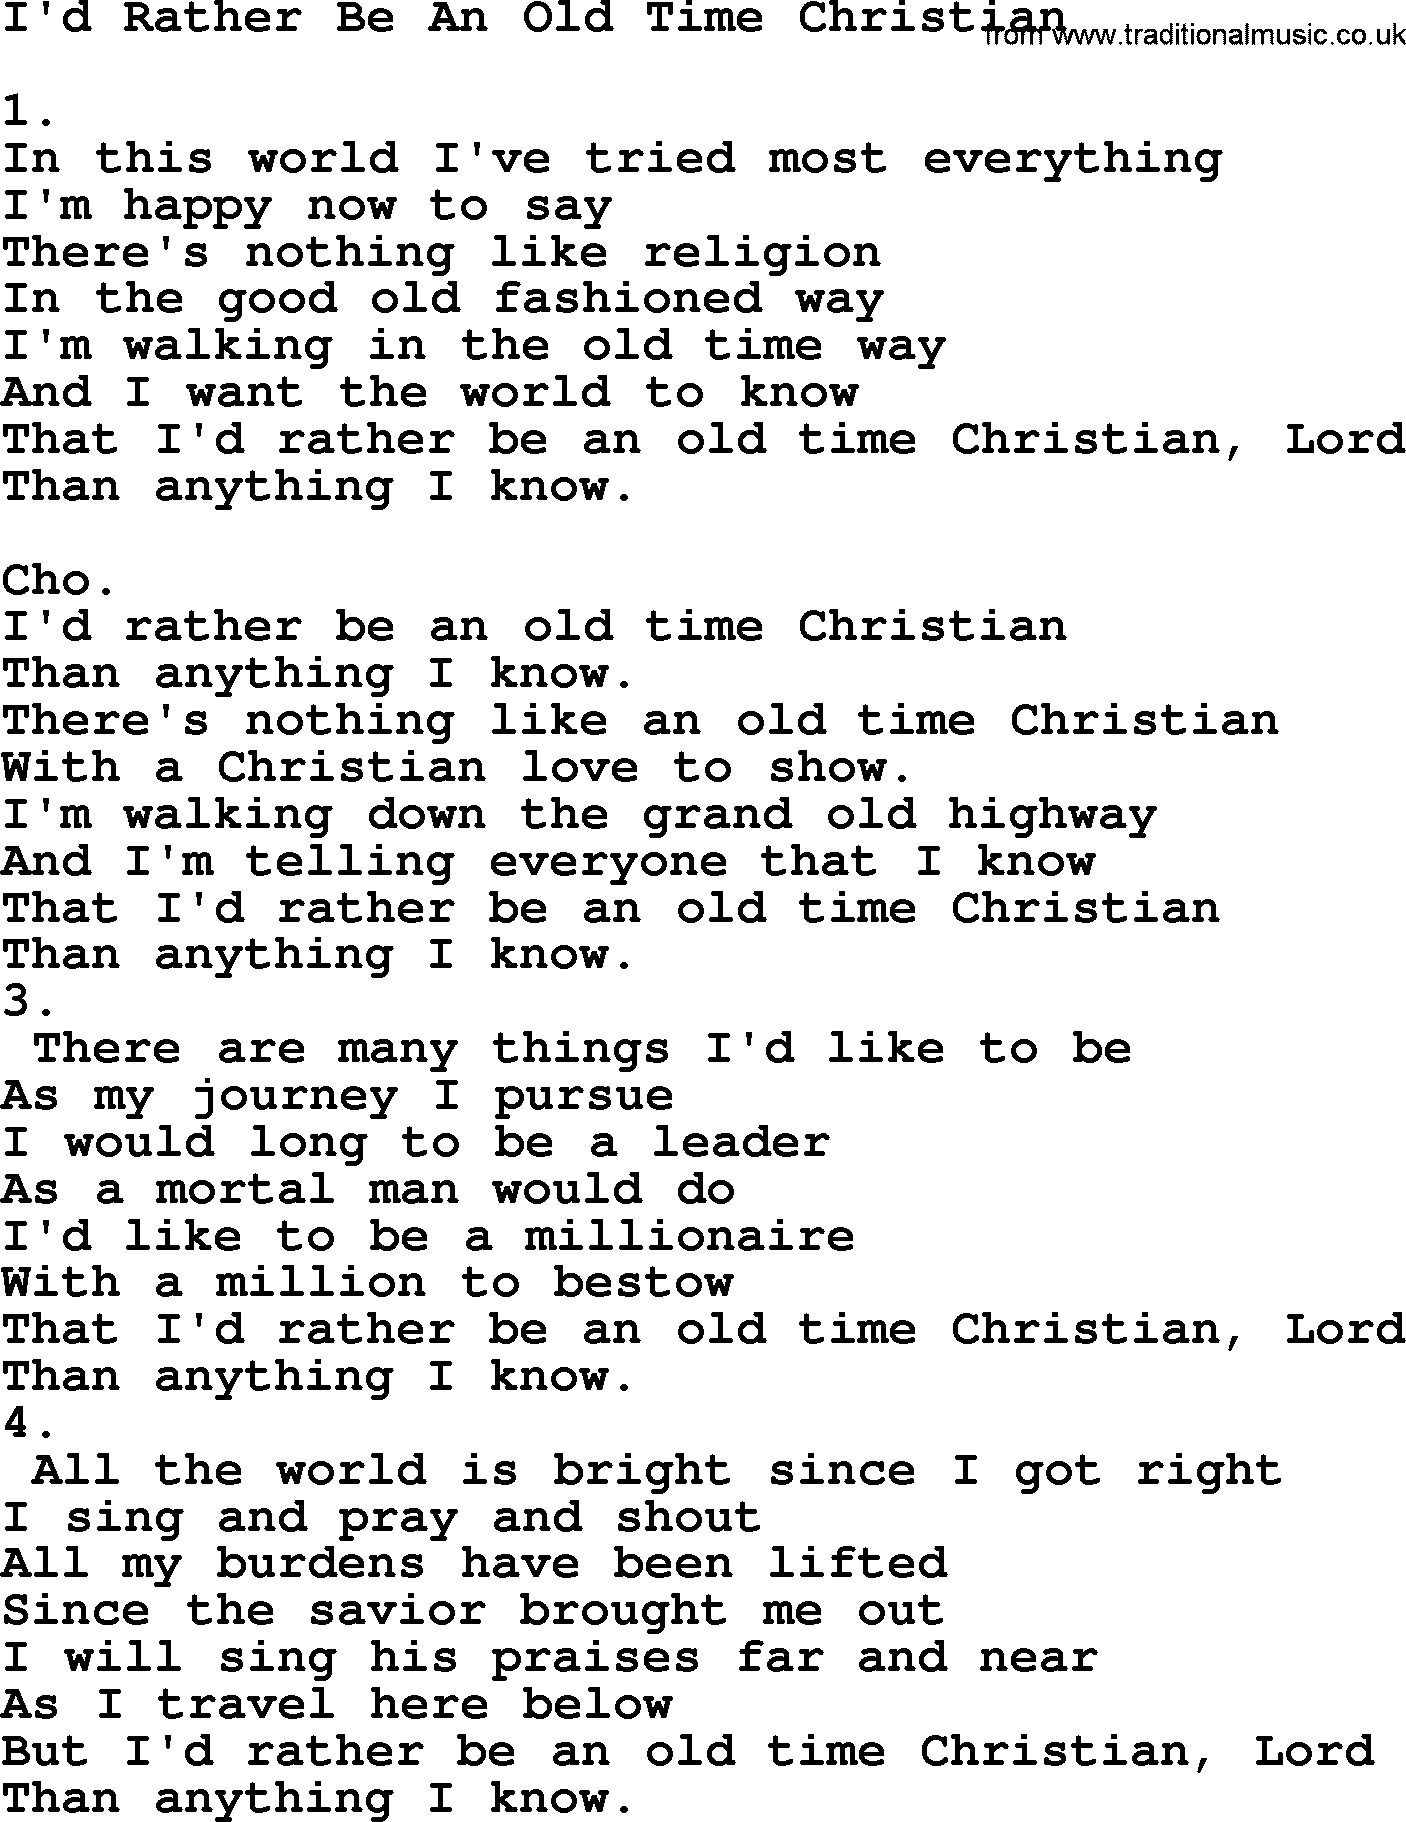 Old time christian lyrics